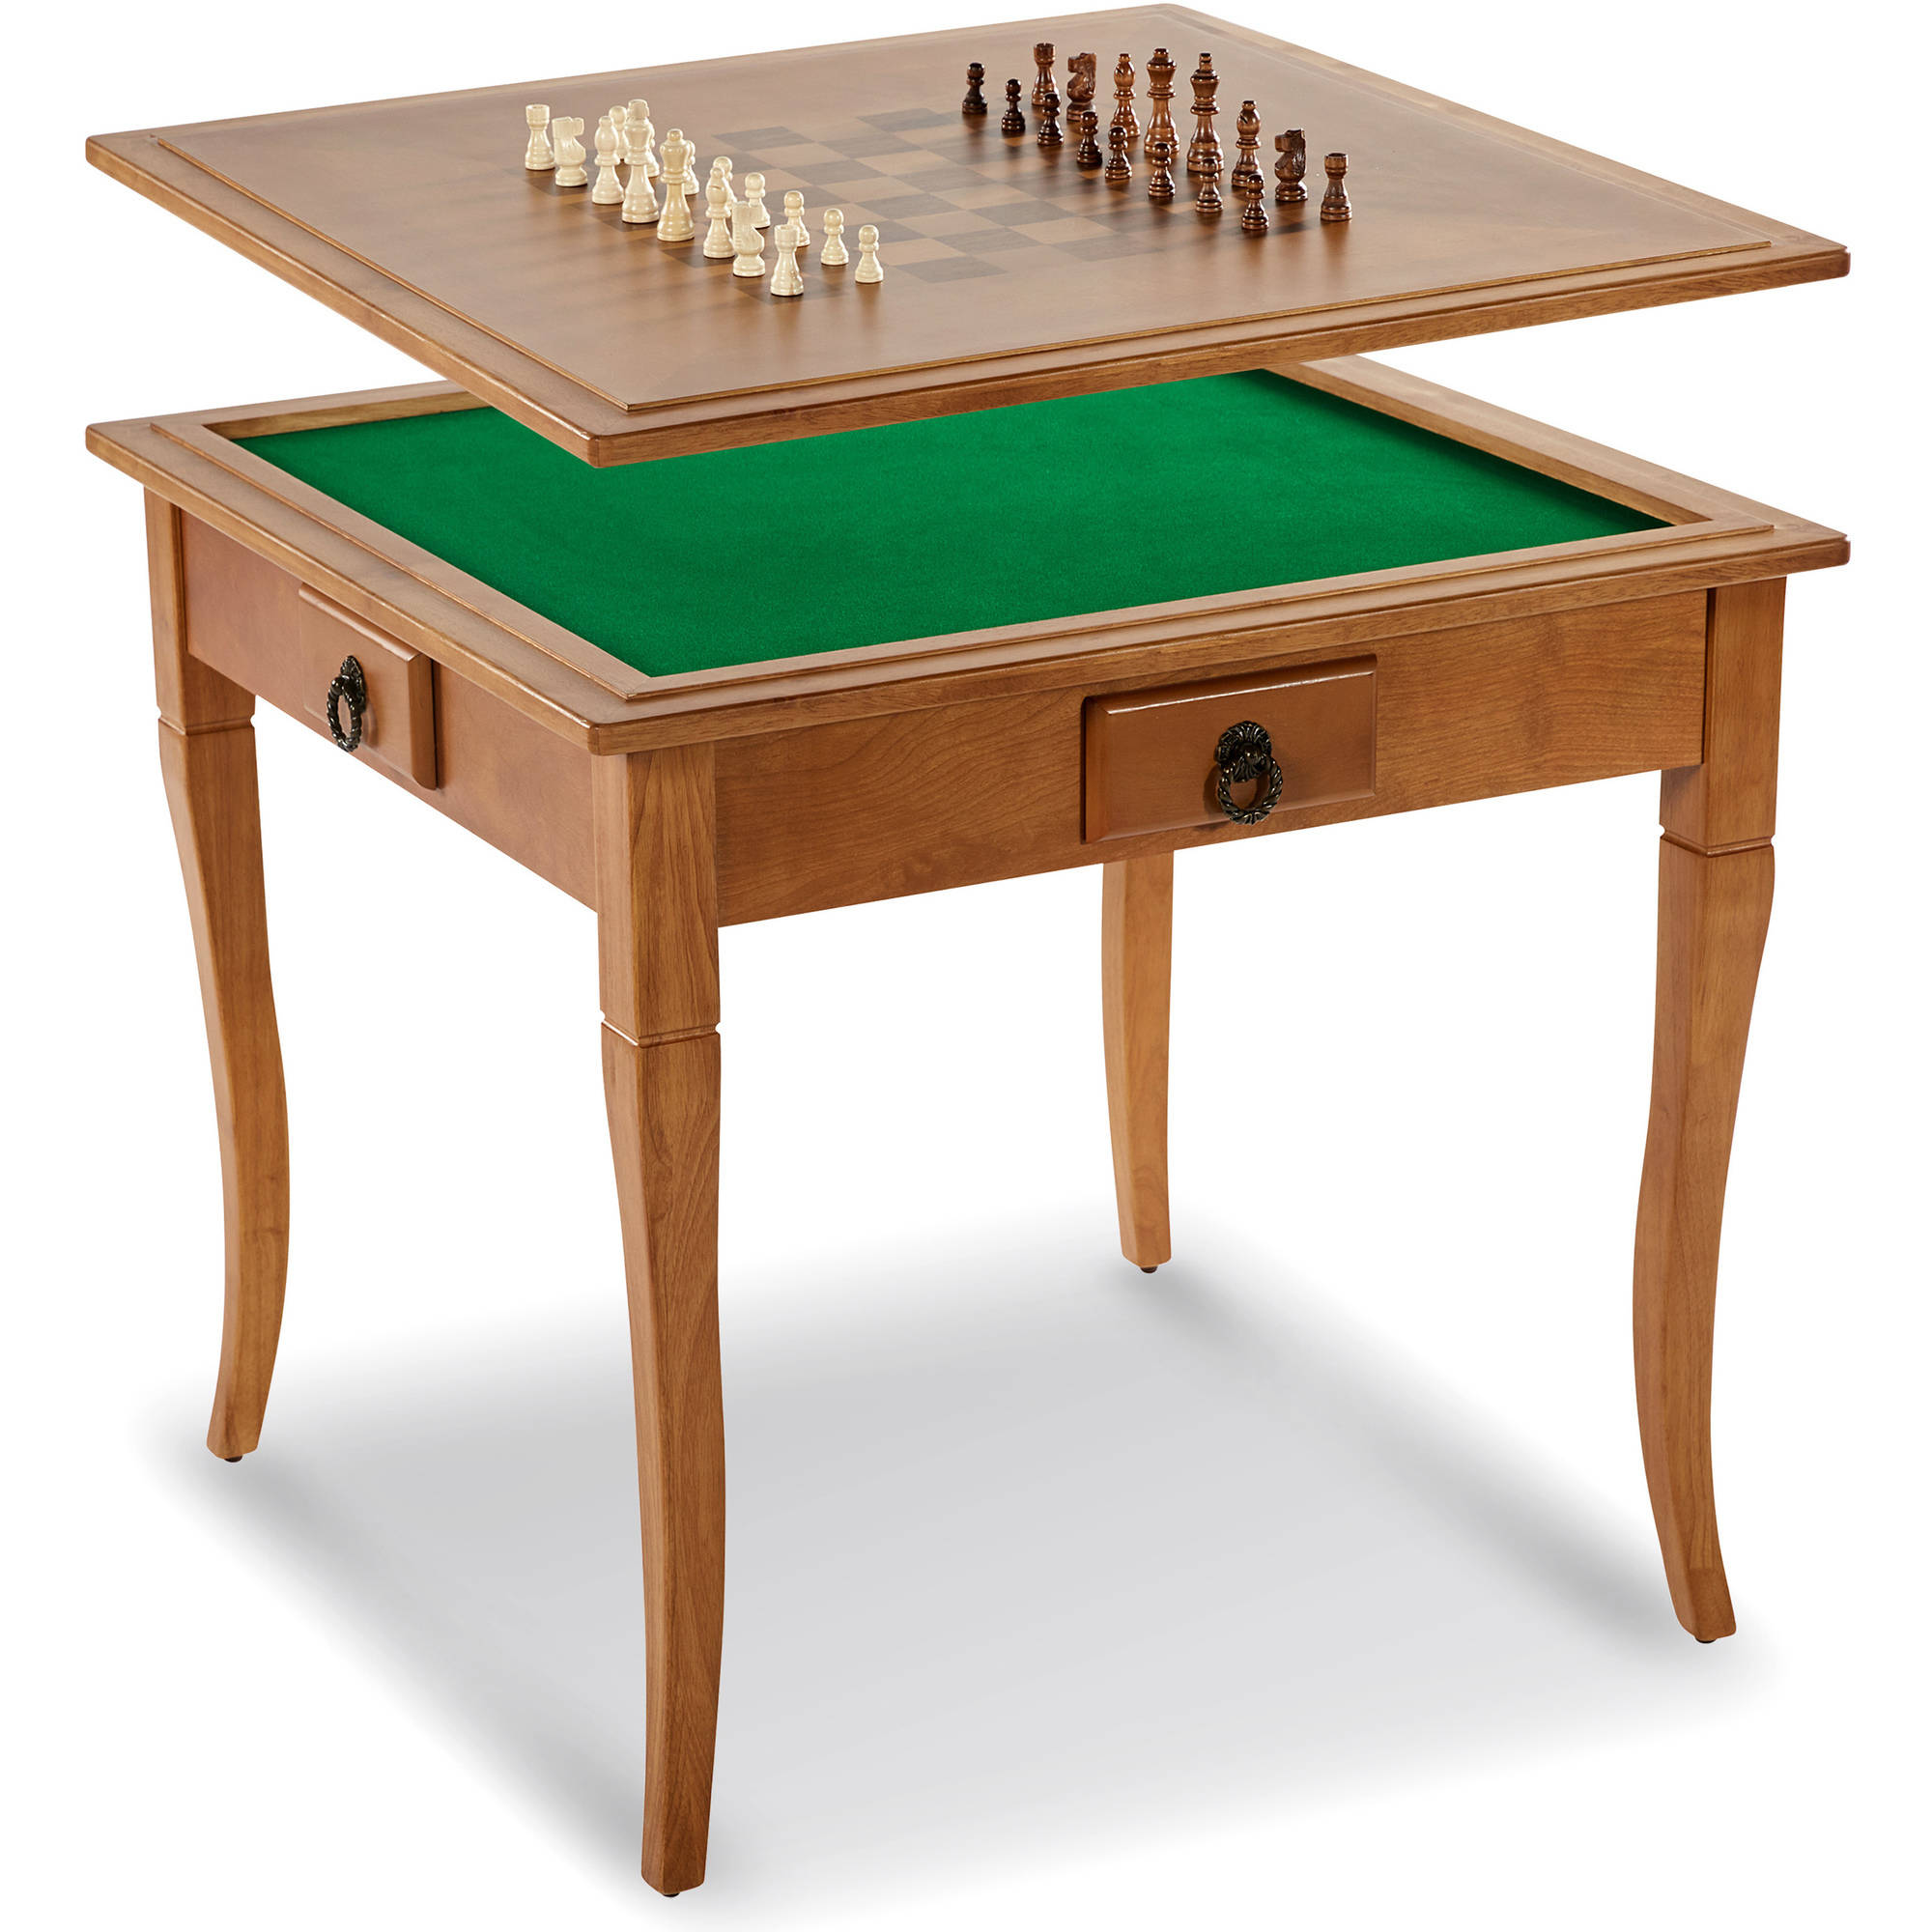 MD Sports Solid Wood Gaming Table with Table Top, Chess, Mahjong, Card, Poker Games by MEDAL SPORTS TAIWAN CORPORATION